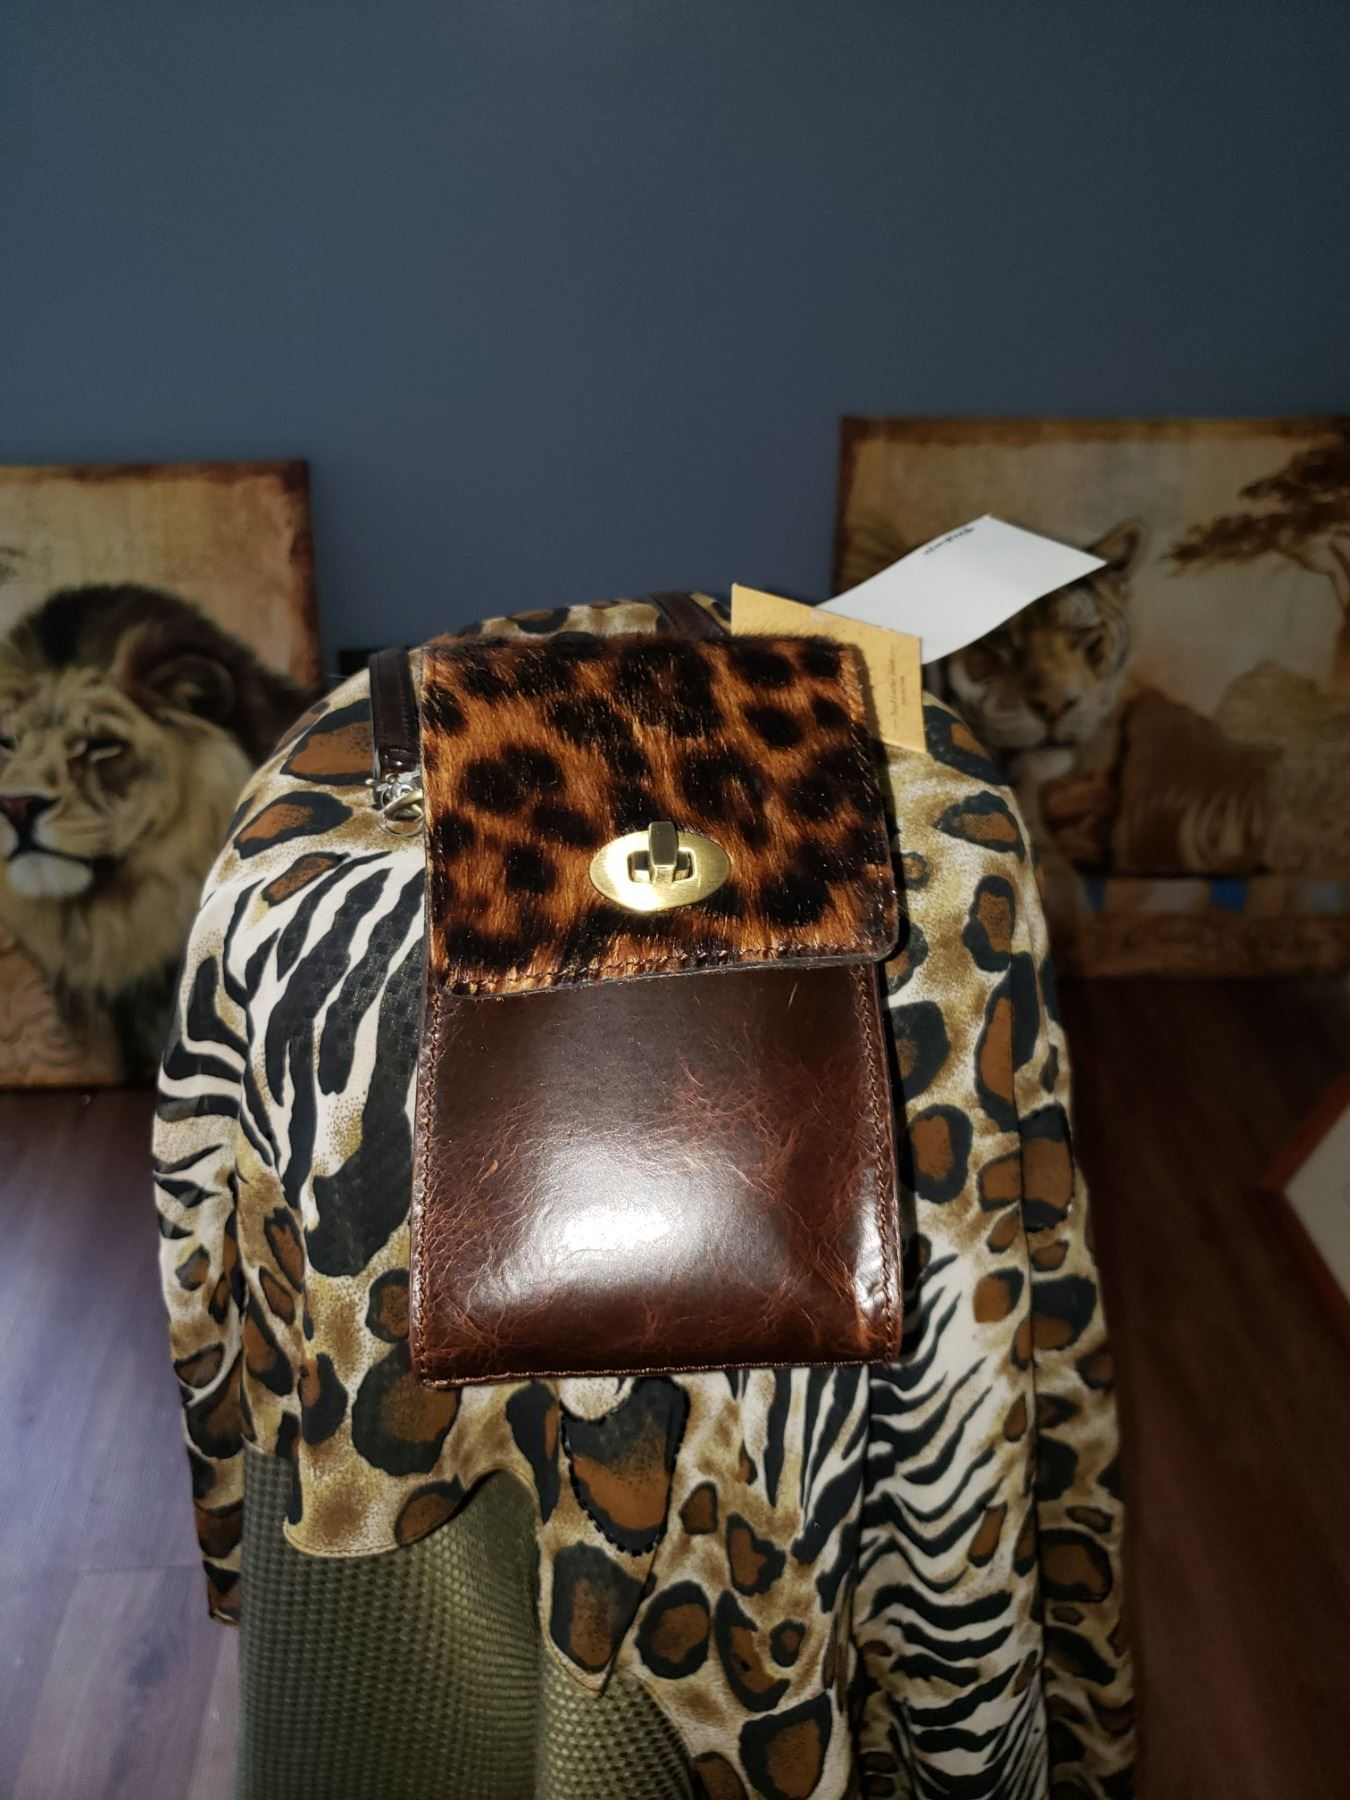 North Florida Chapter donates a Small Leather Patricia Nash Cross Body bag.